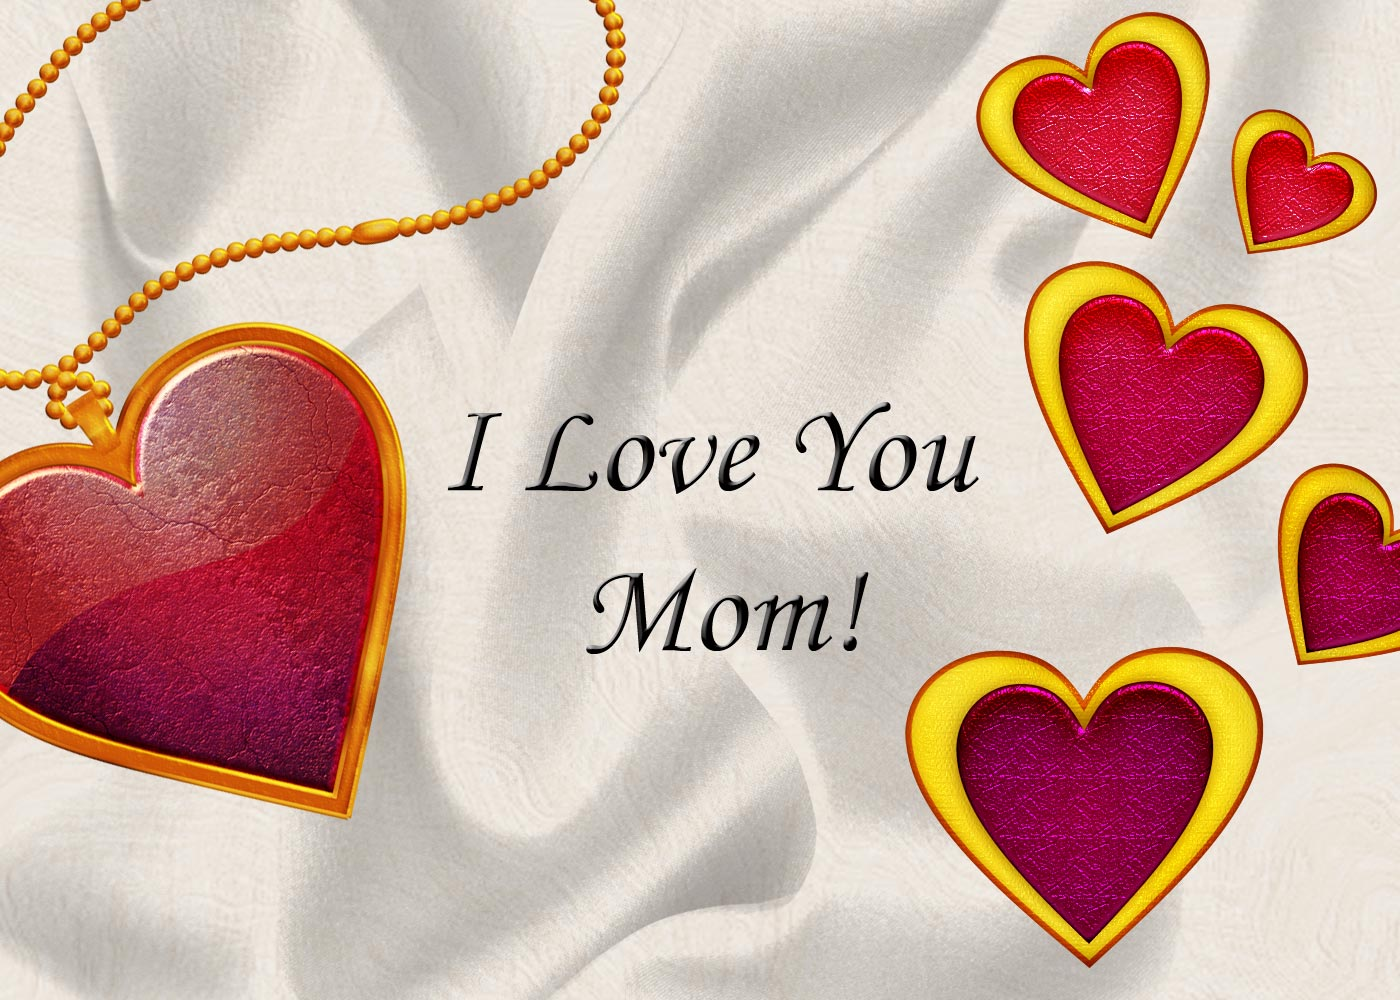 mothers day wallpaper hd new picture images photos download